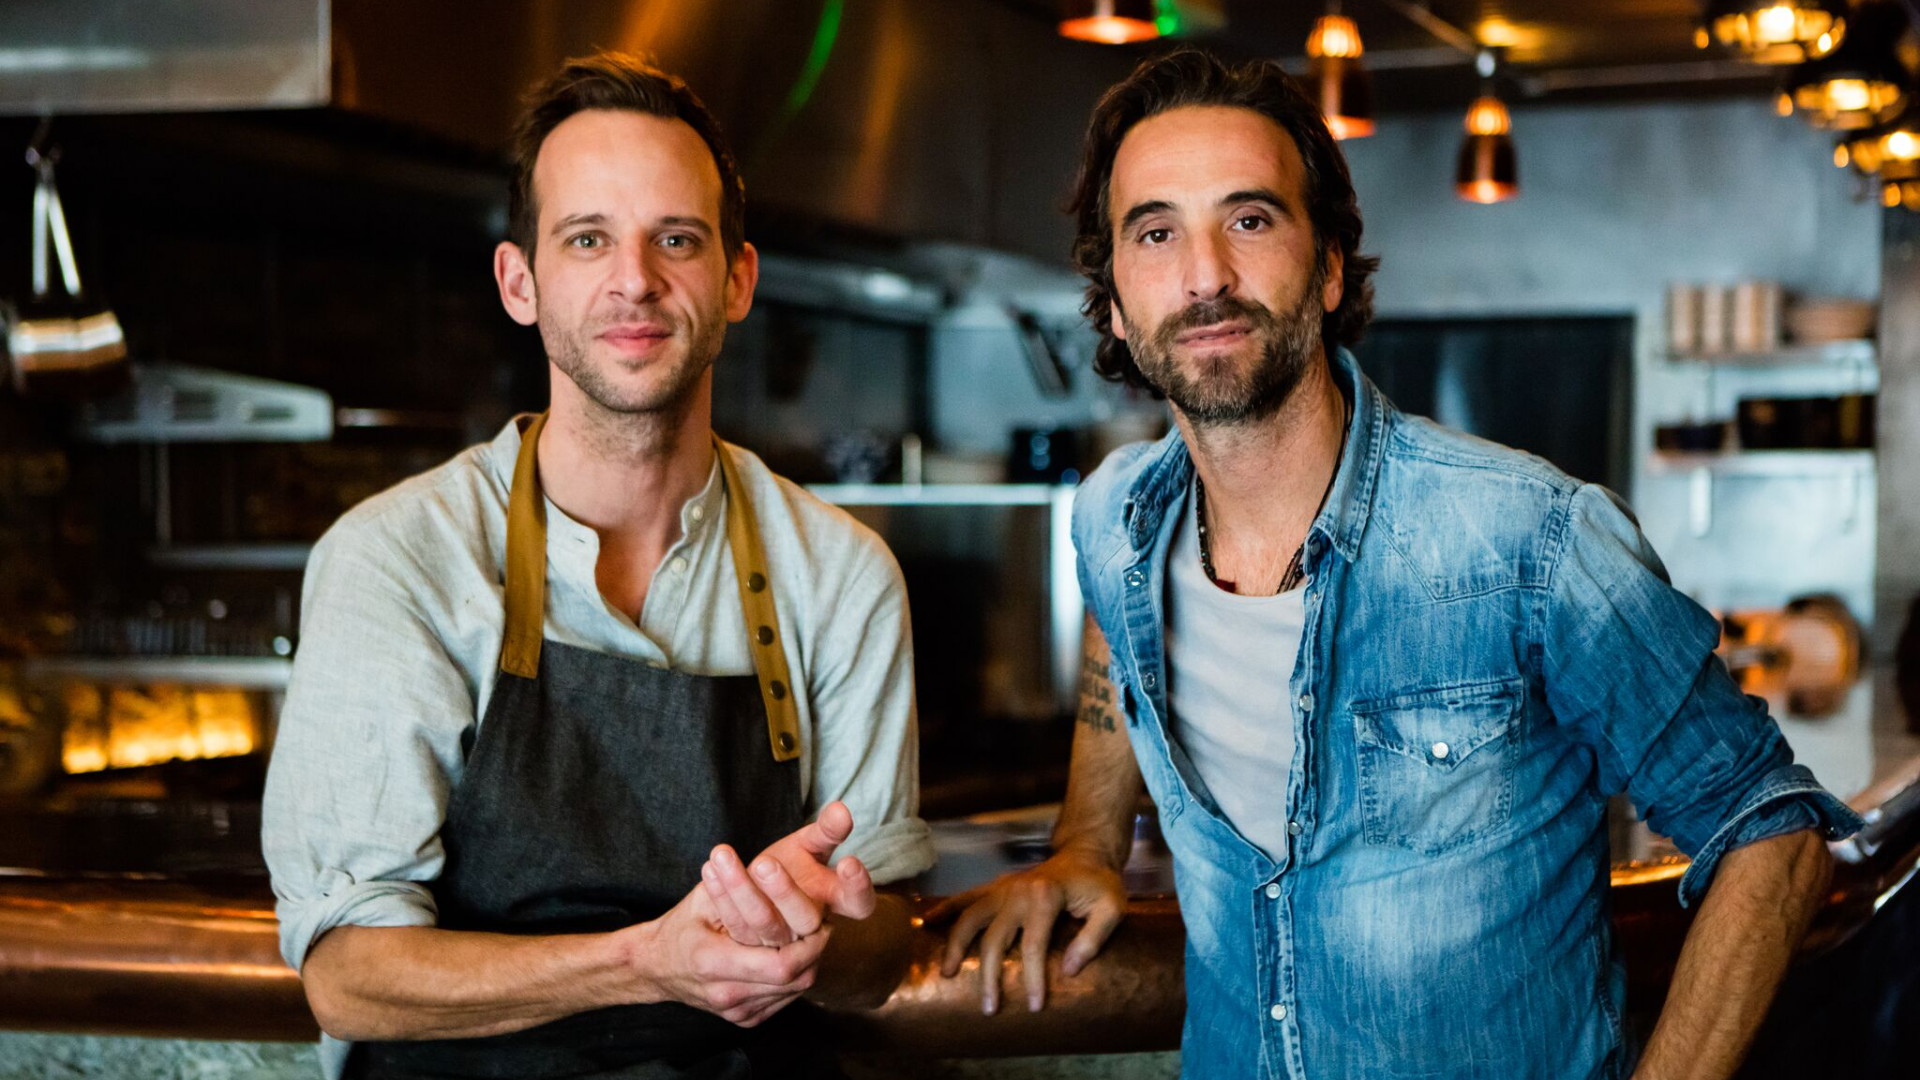 108 Garage founders Luca Longobardi and Chris Denney